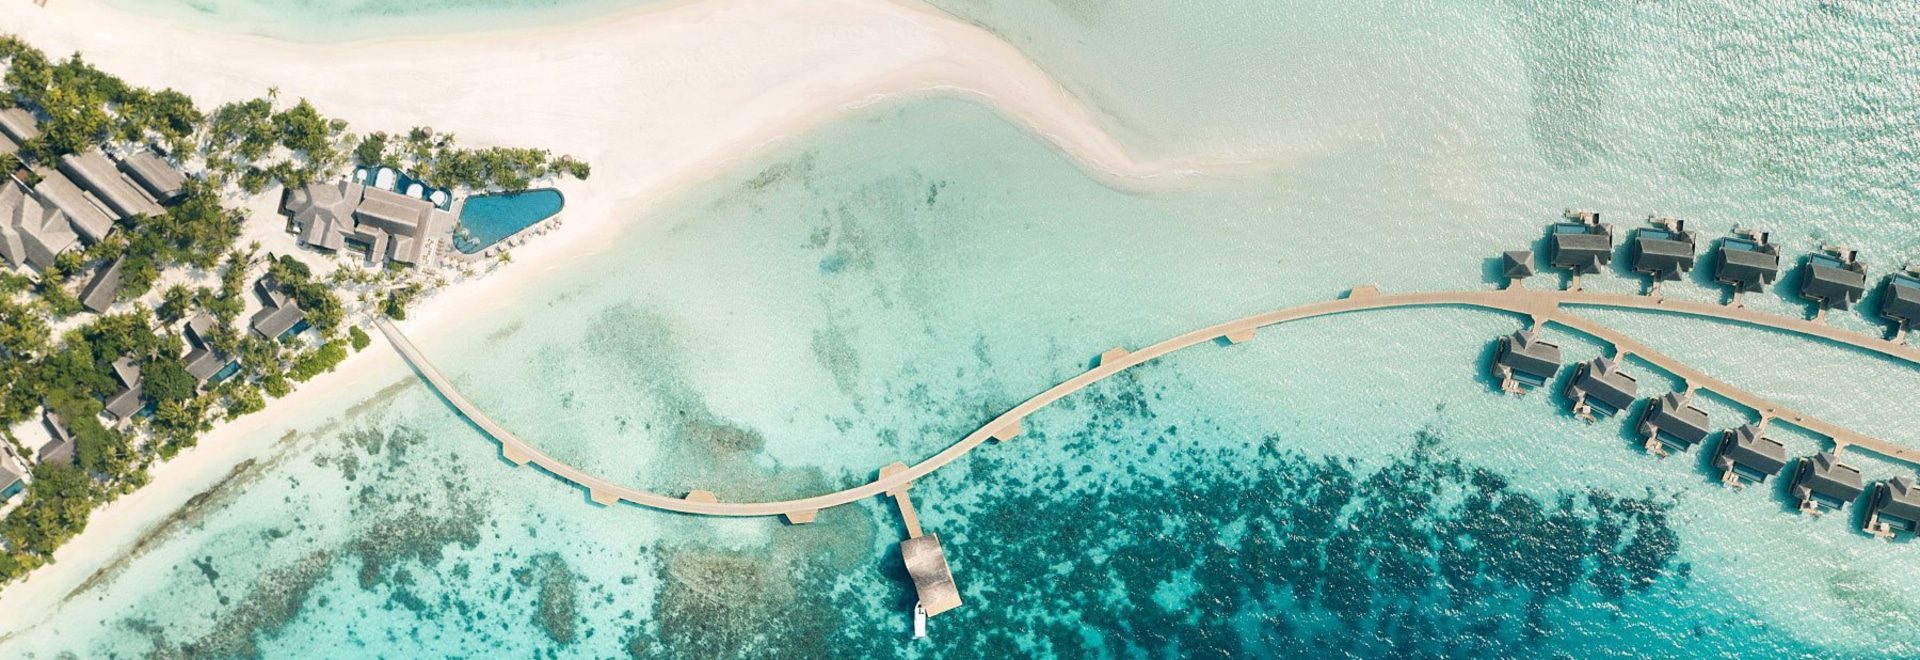 this luxury resort by autoban draws from the maldives' vernacular architecture